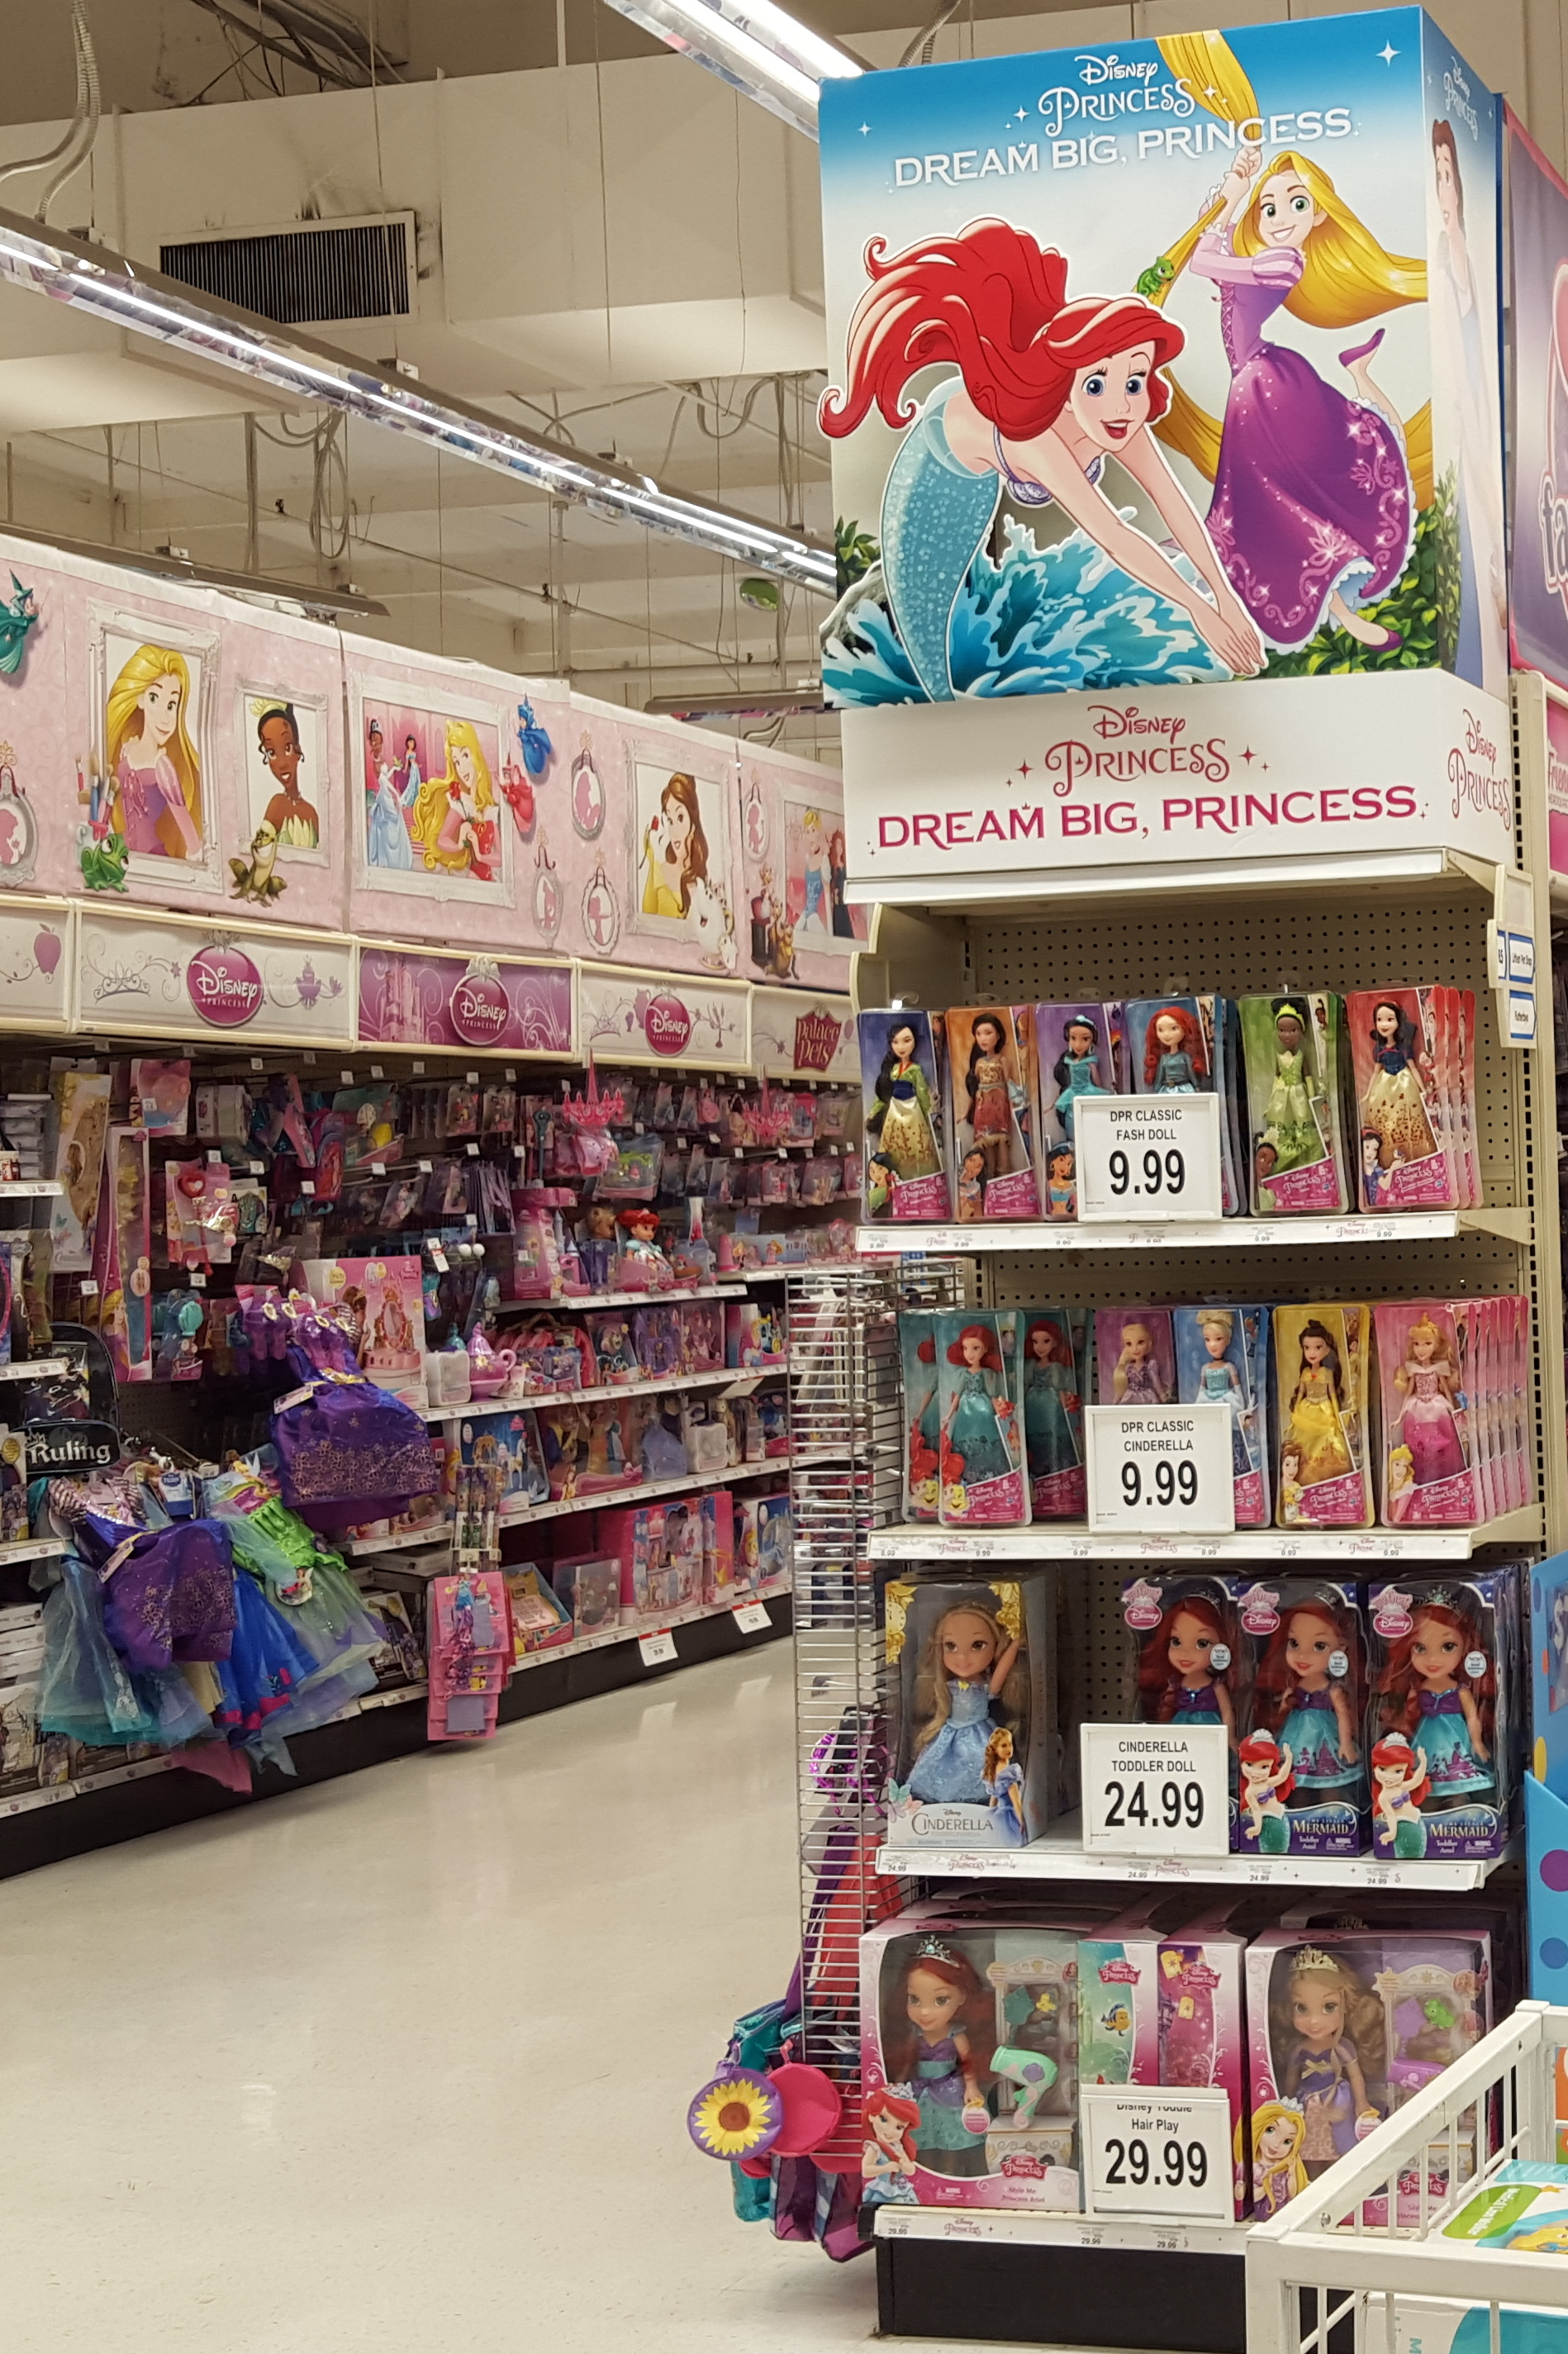 Toys For Big : Inspiring dreams with disney princesses my big fat happy